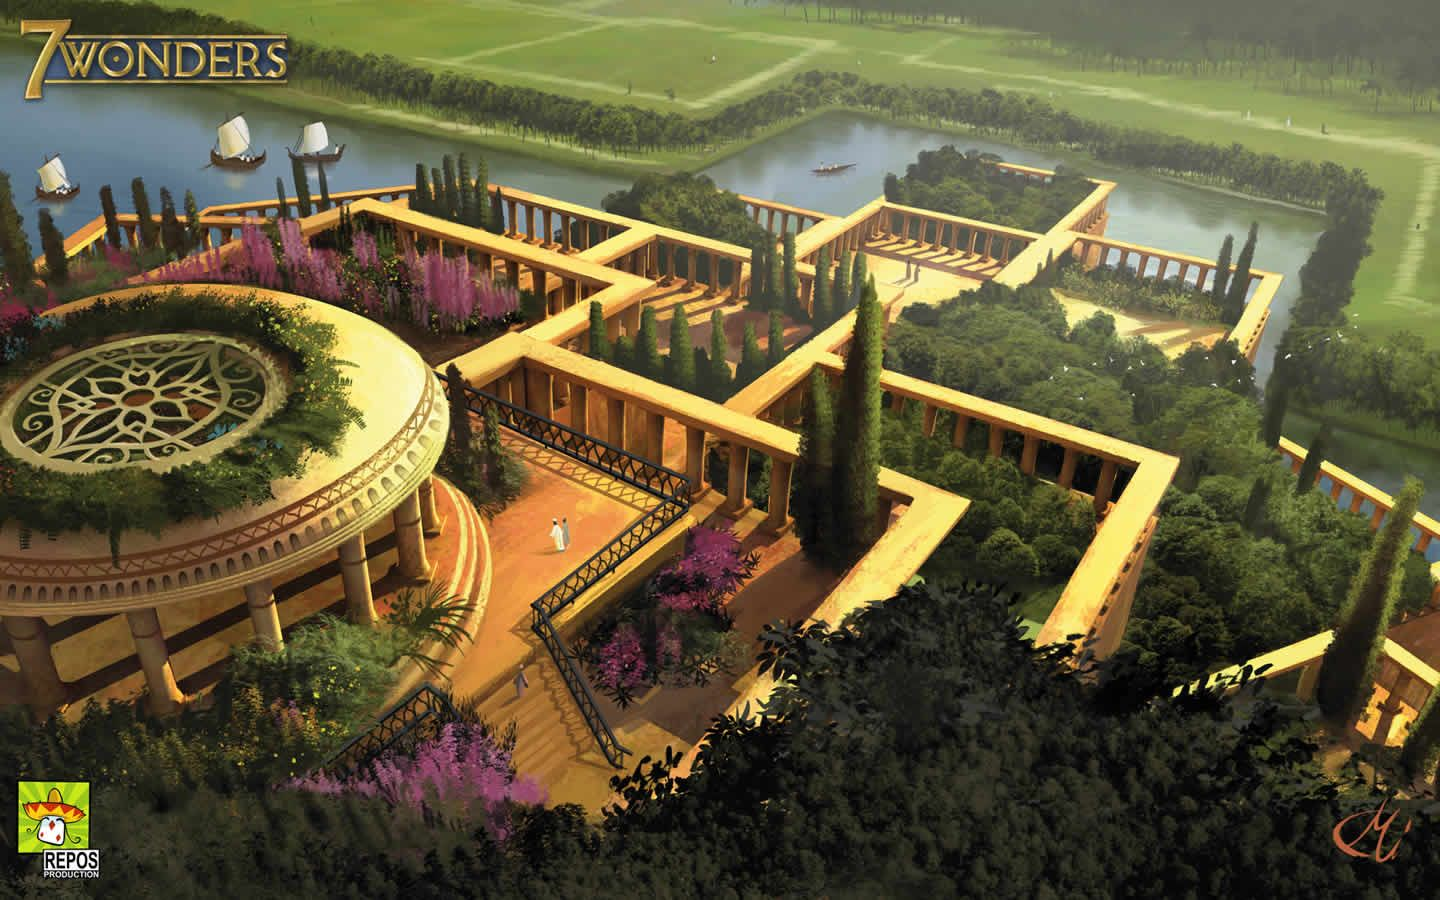 The Hanging Gardens Of Babylon wallpapers | HD Windows Wallpapers ...